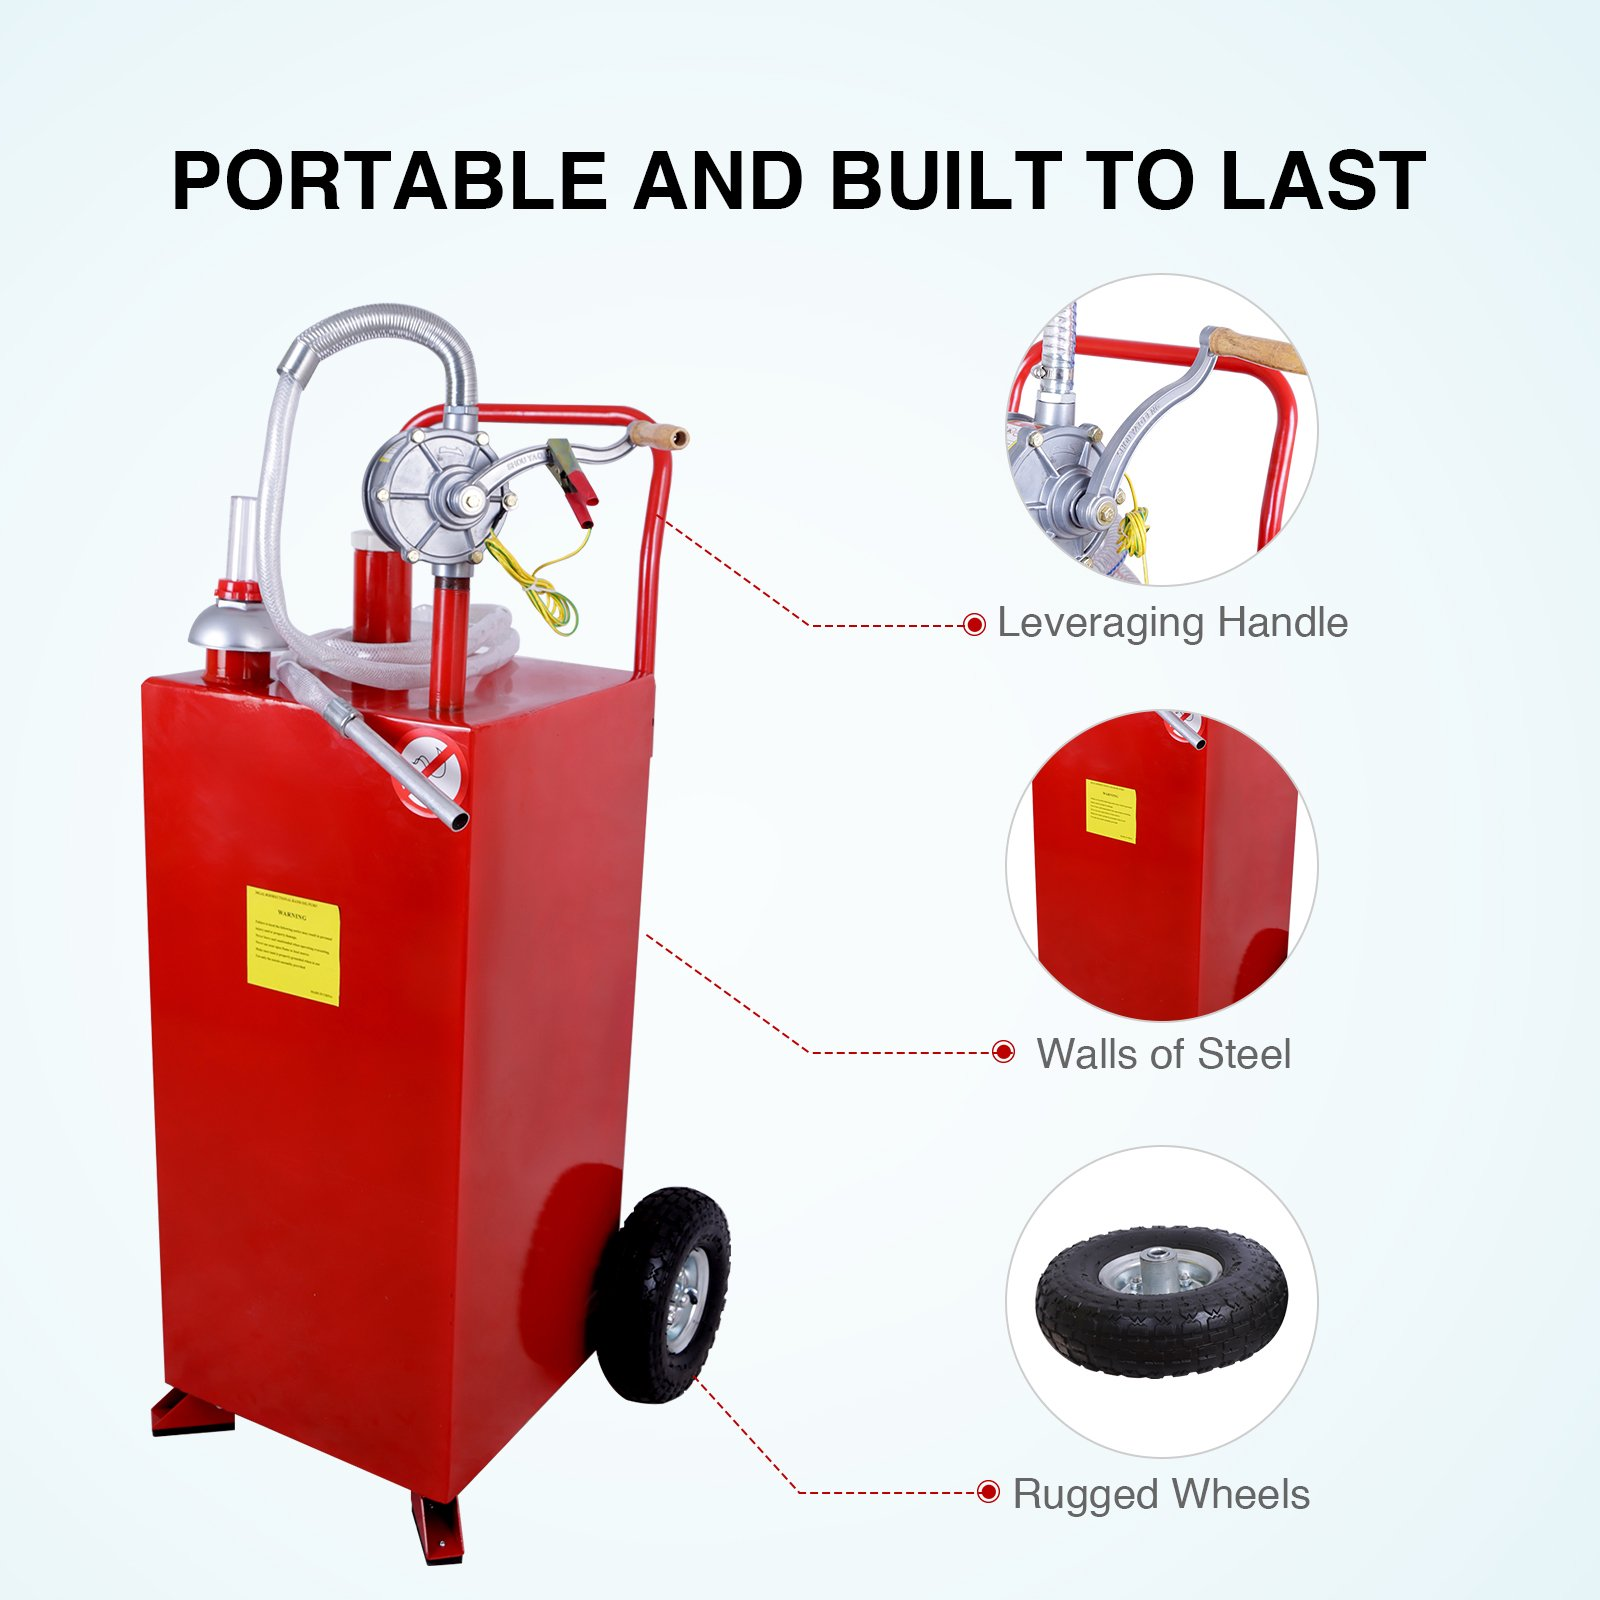 SUNCOO 30 Gallon Portable Gas Tank Diesel Fuel Caddy Storage Containers Pump & Hose Tube, Red by SUNCOO (Image #4)